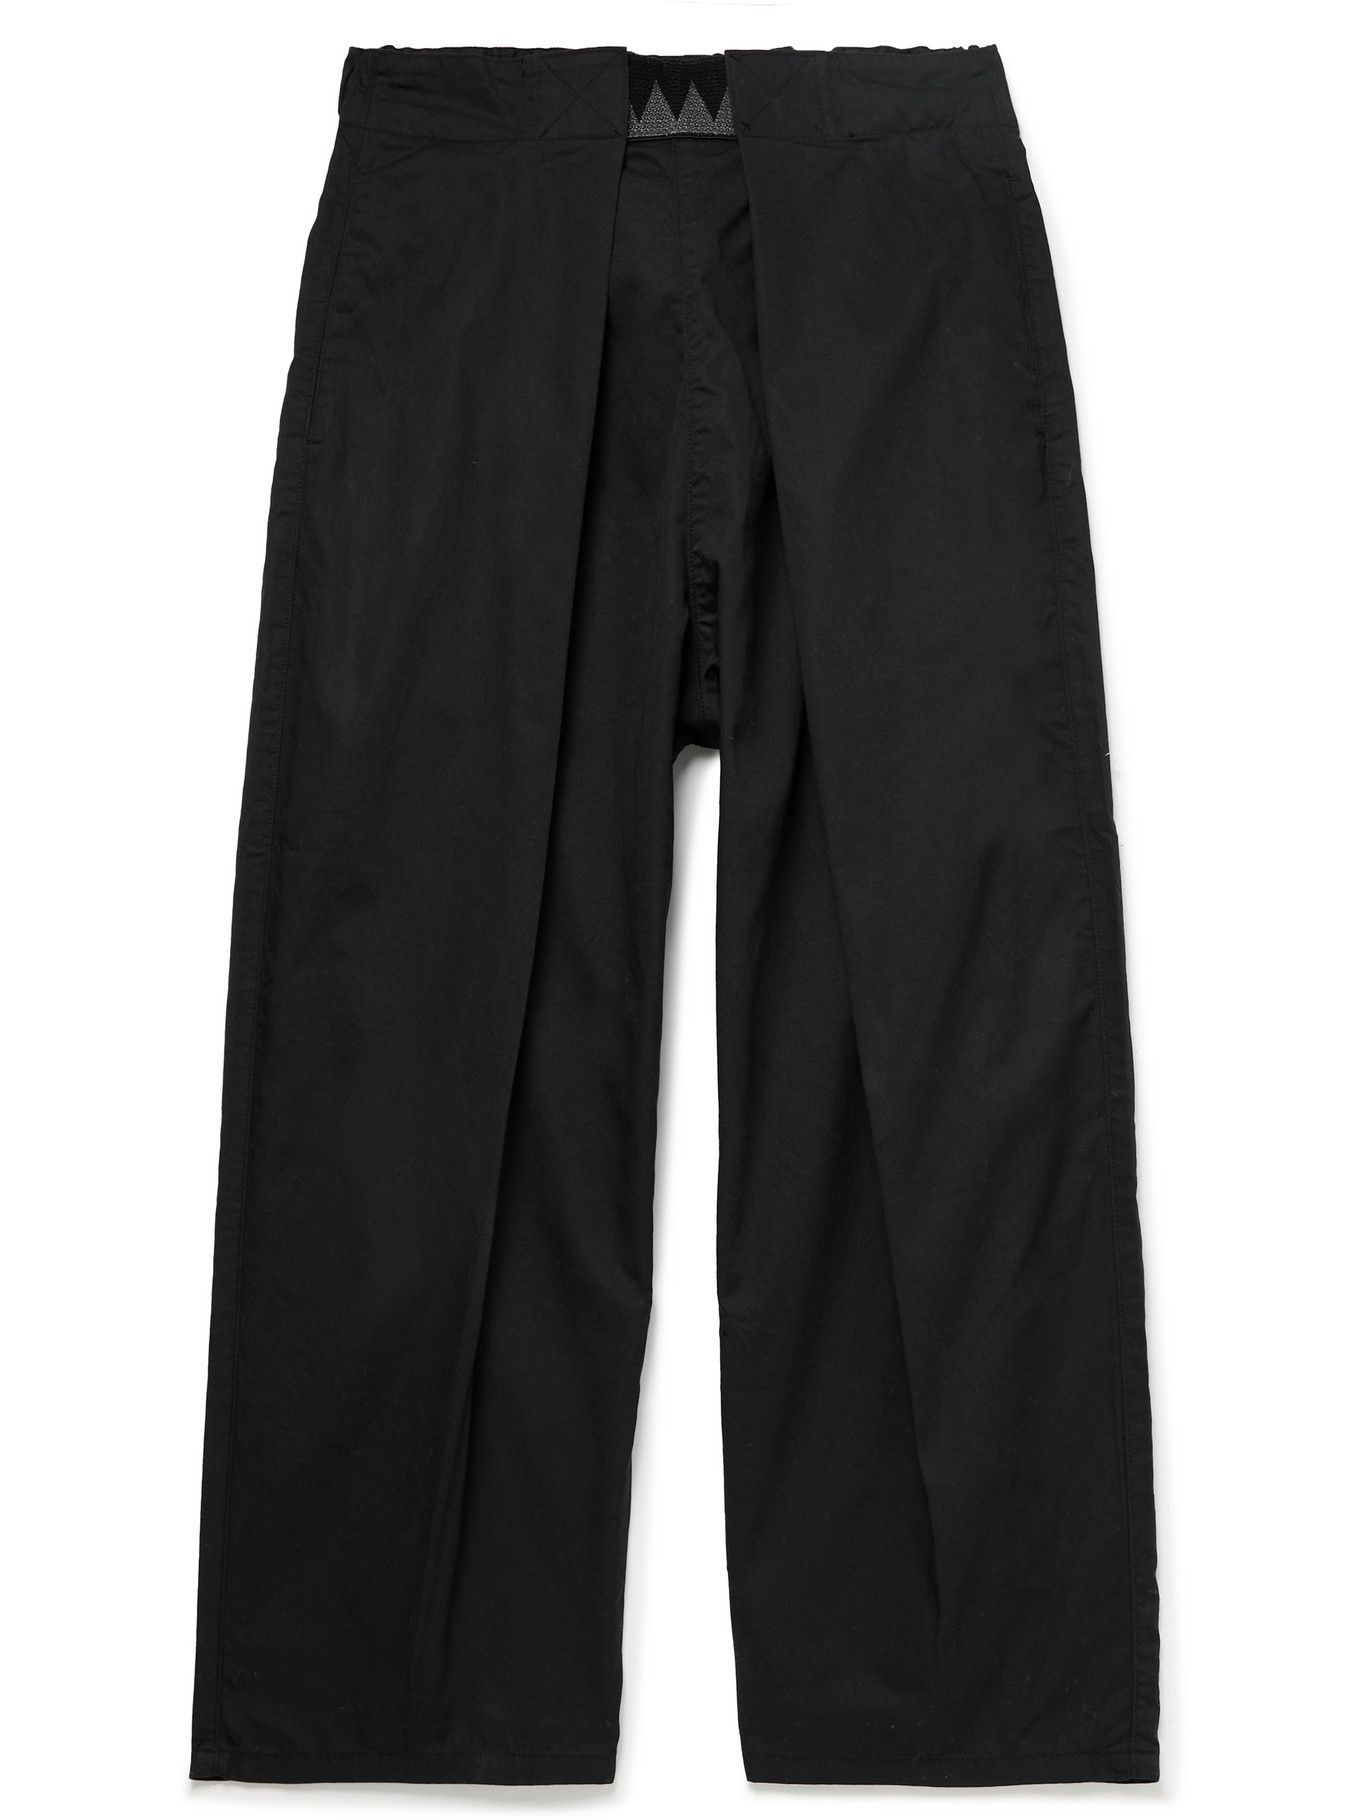 KAPITAL - Tapered Cropped Printed Cotton Trousers - Unknown